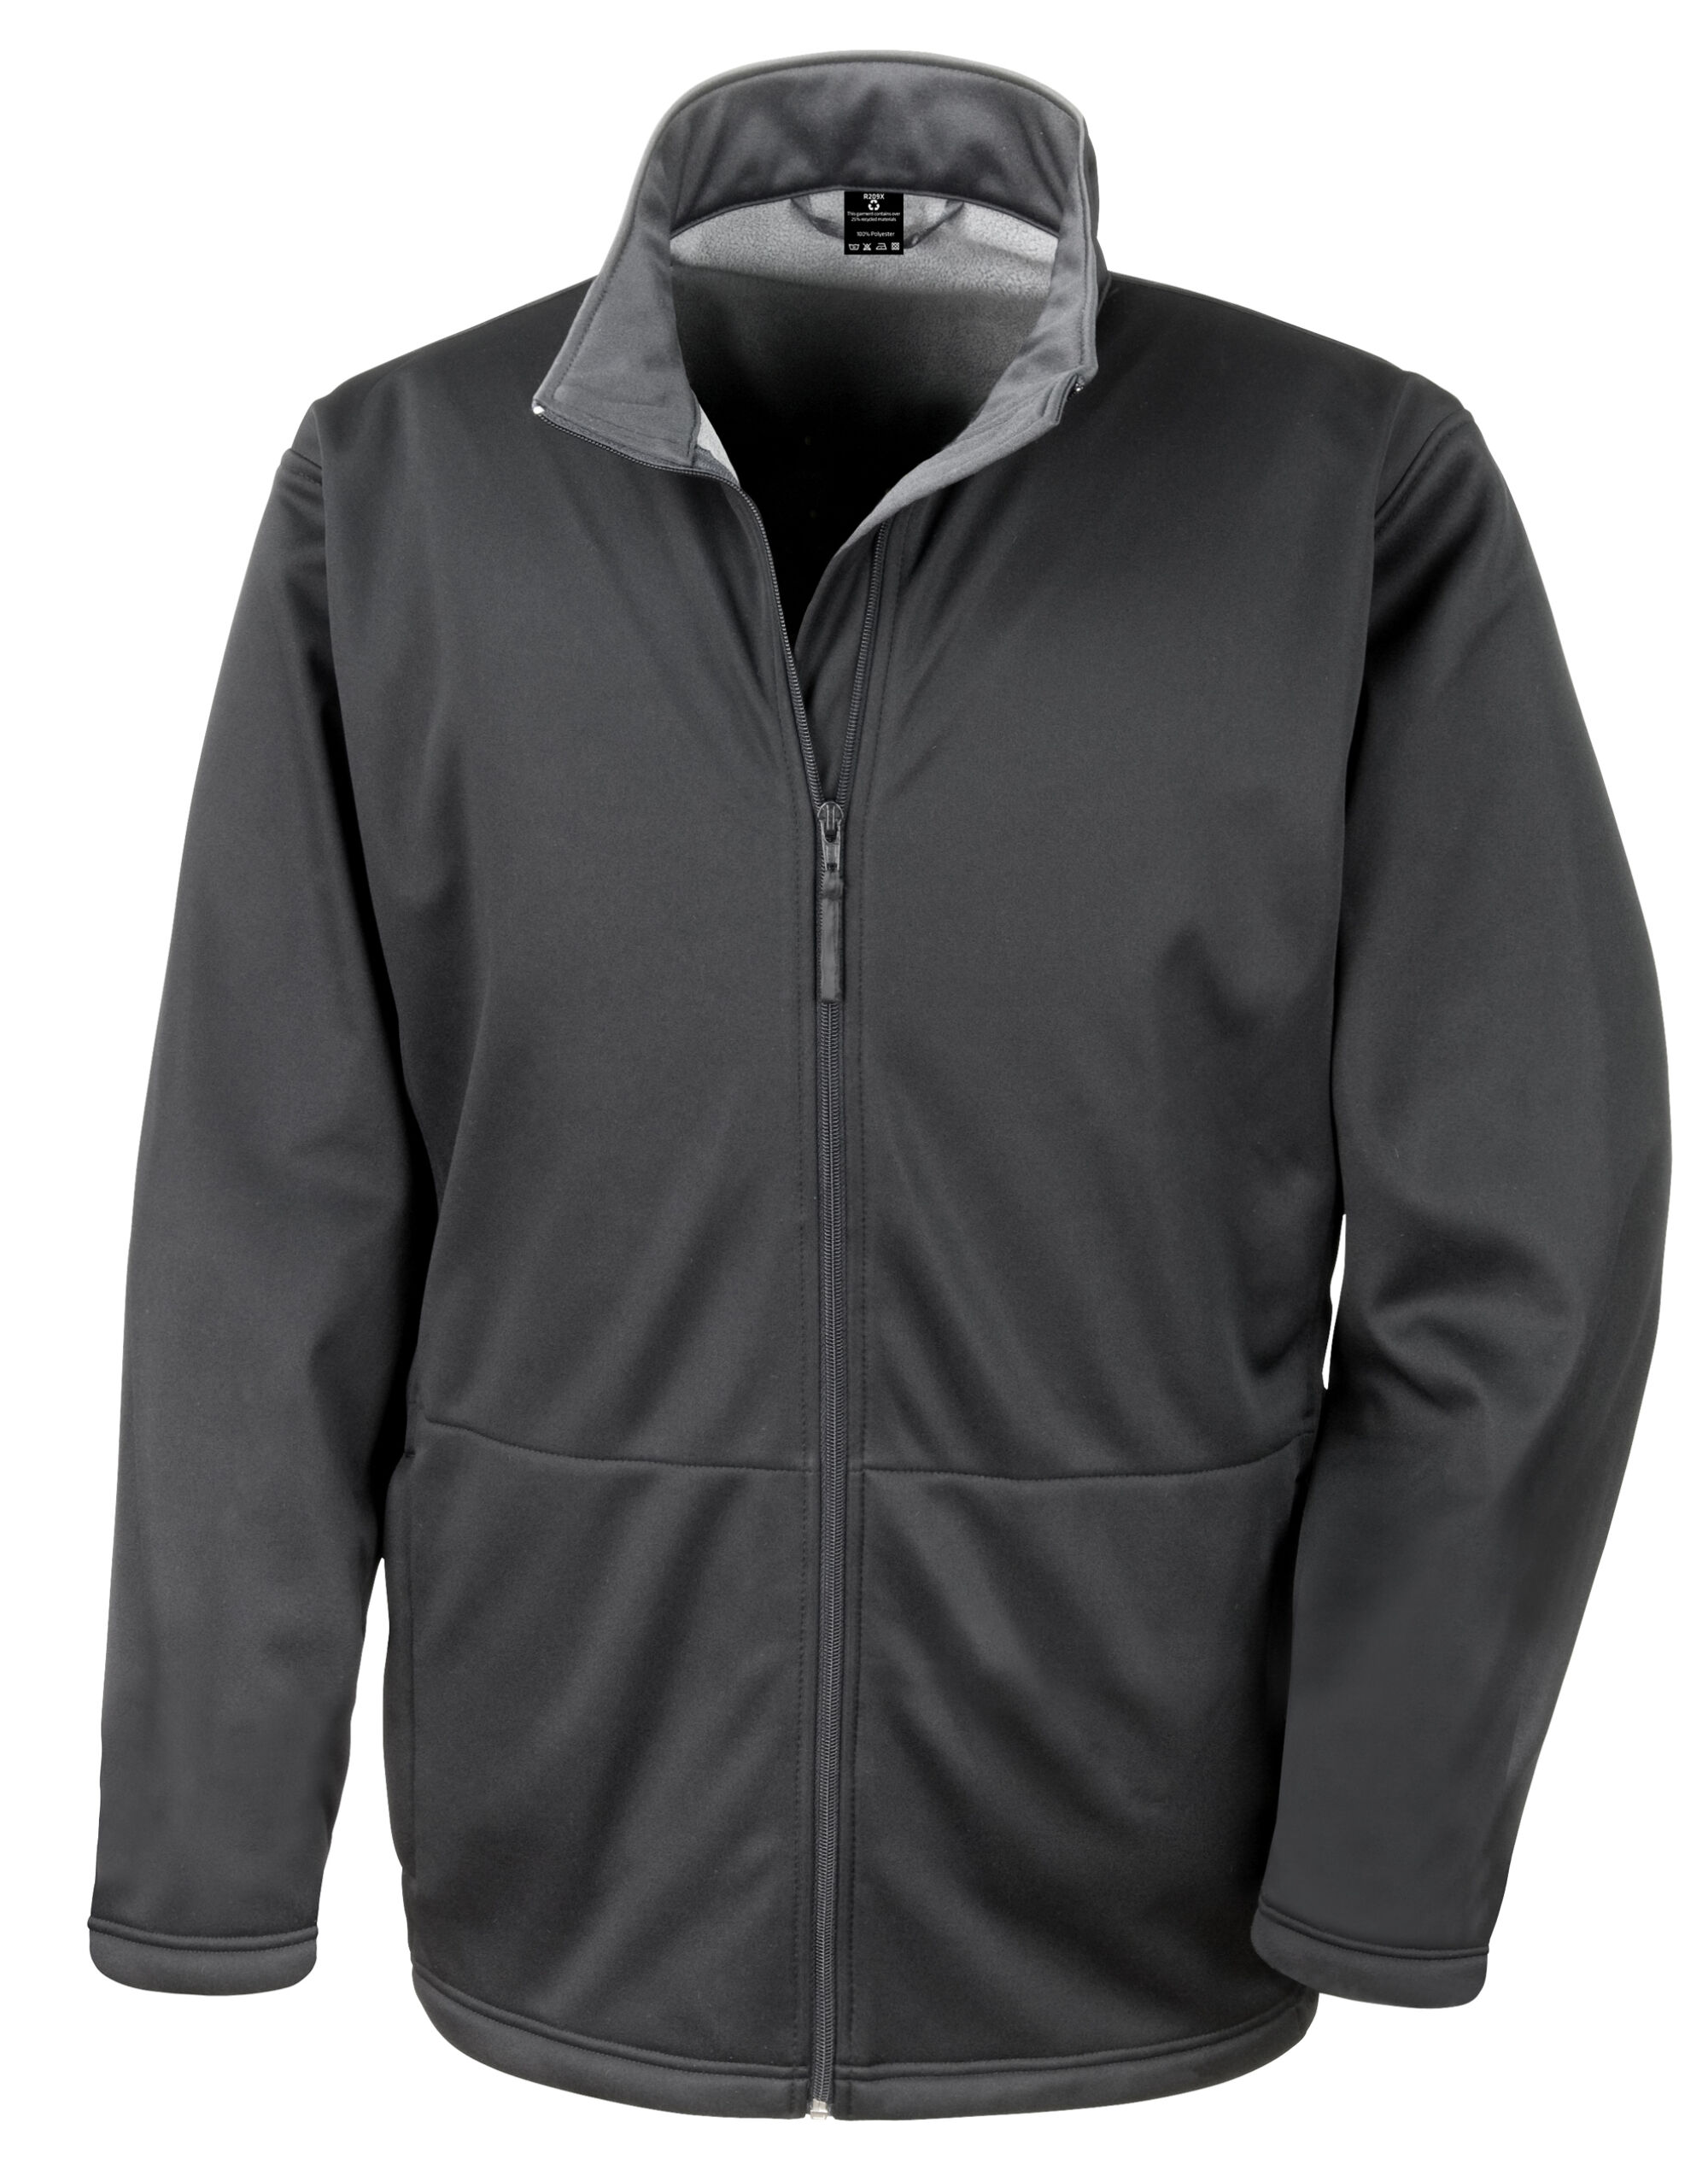 Core Men's Soft Shell Jacket